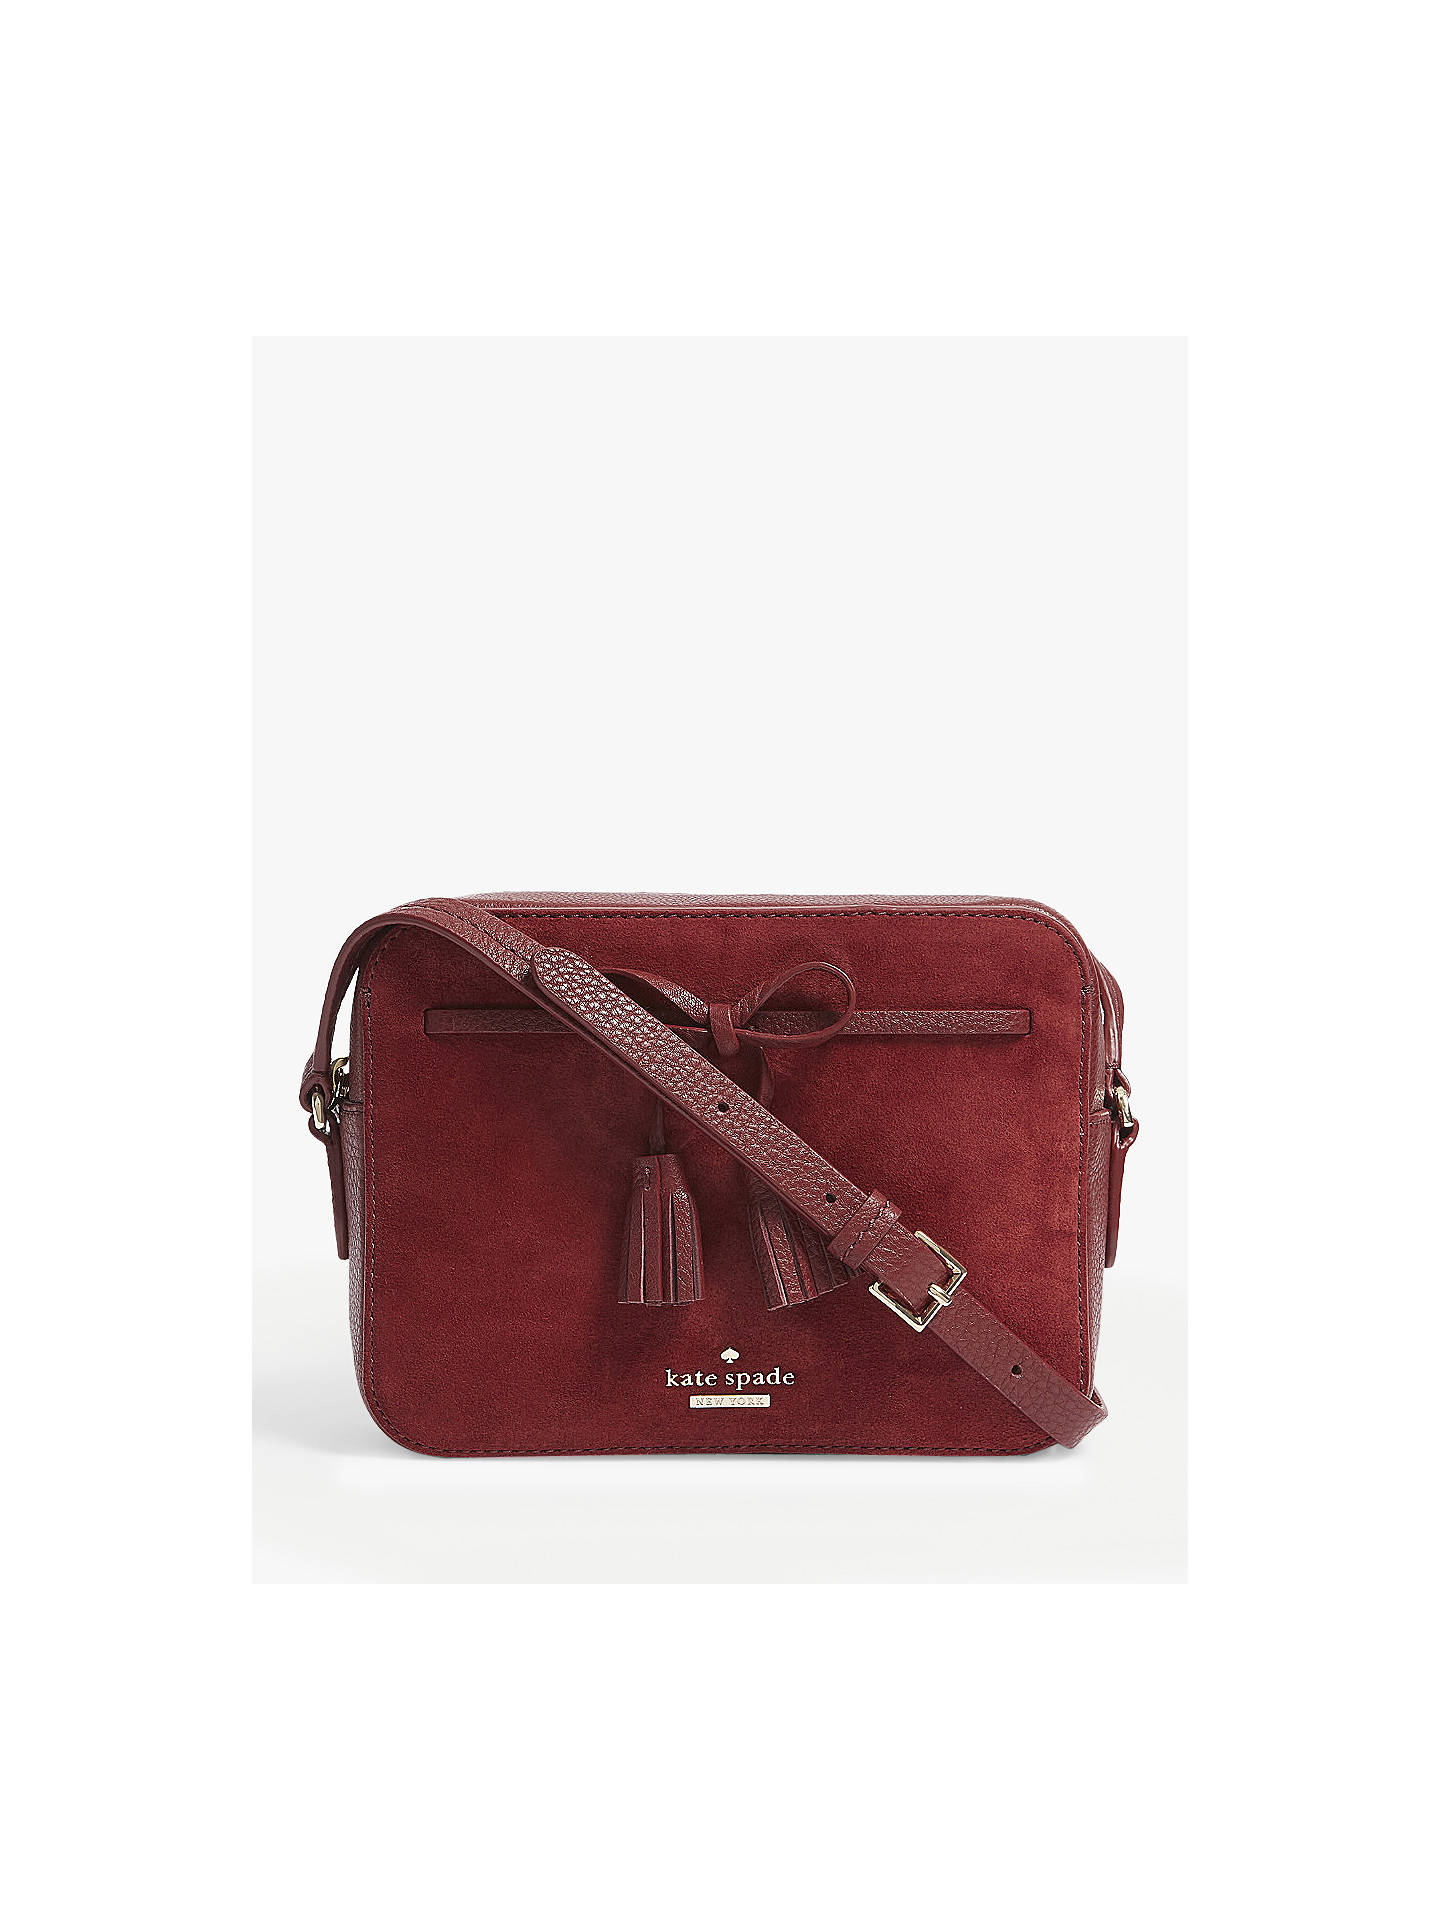 e812c64ce93d Buy kate spade new york Hayes Street Arla Suede Cross Body Bag, Sienna  Online at